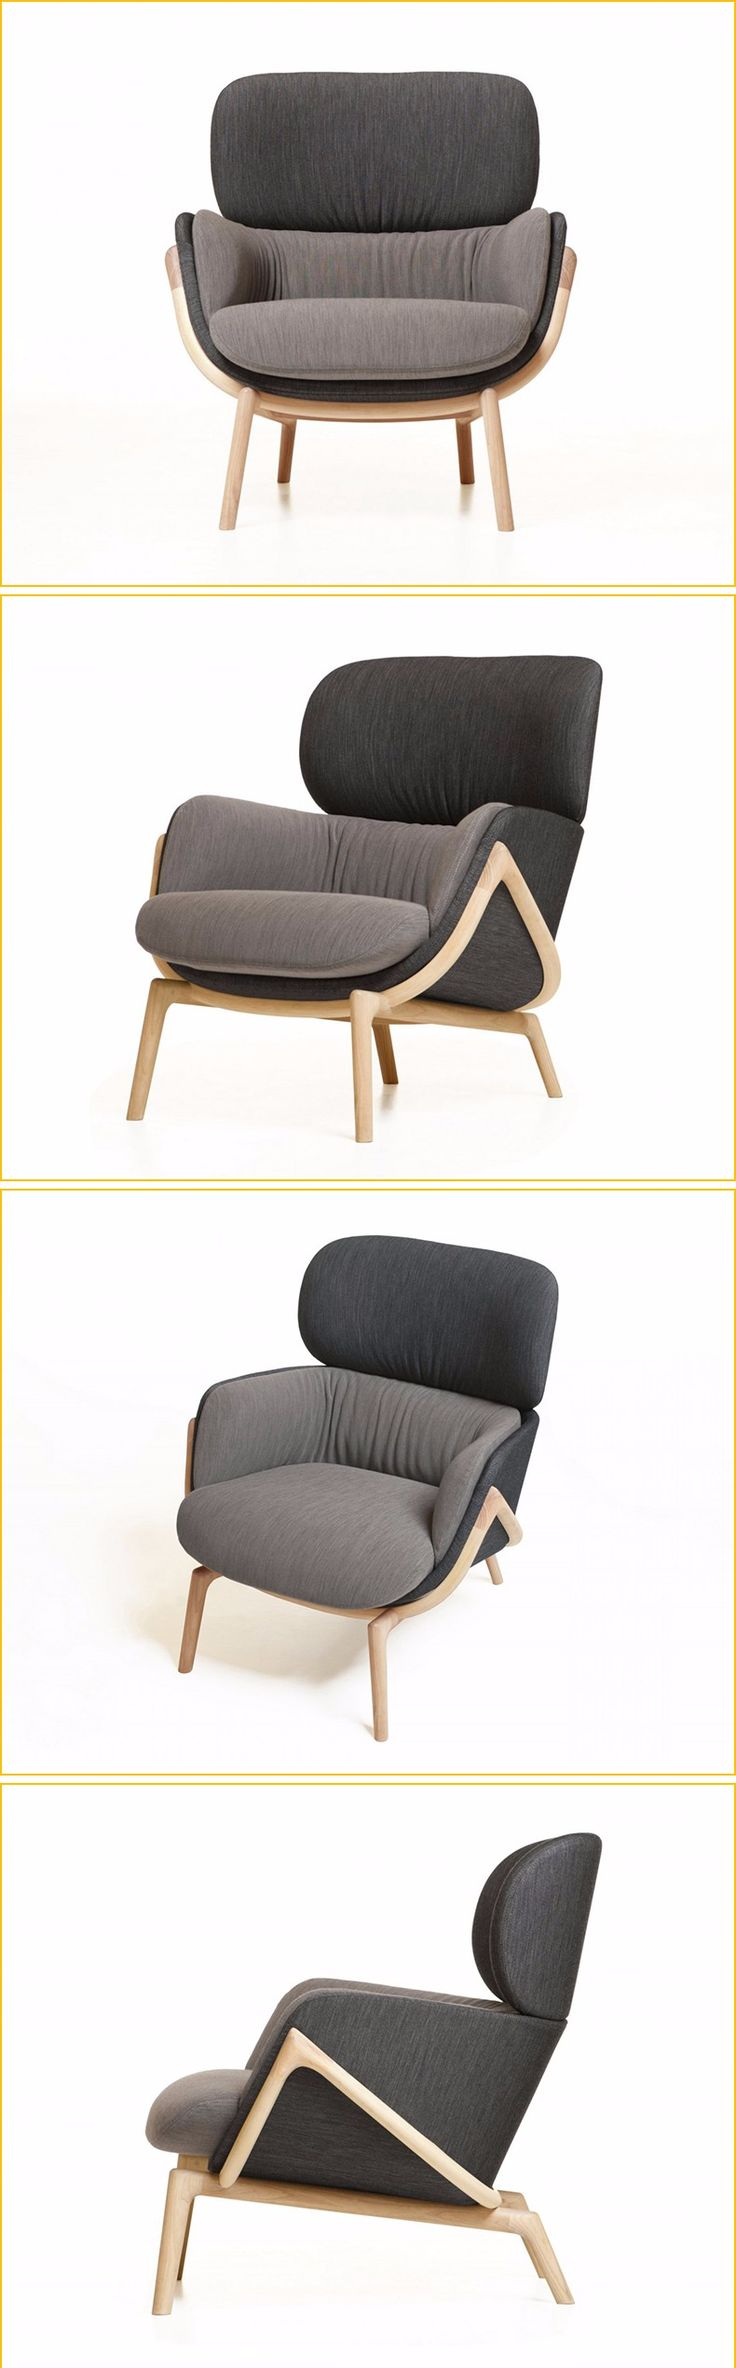 European Style velvet elegant wood carved chaise lounge, View velvet chaise lounge, OEM Product Details from Mindawe  Furniture Limited (Huizhou) on Alibaba.com